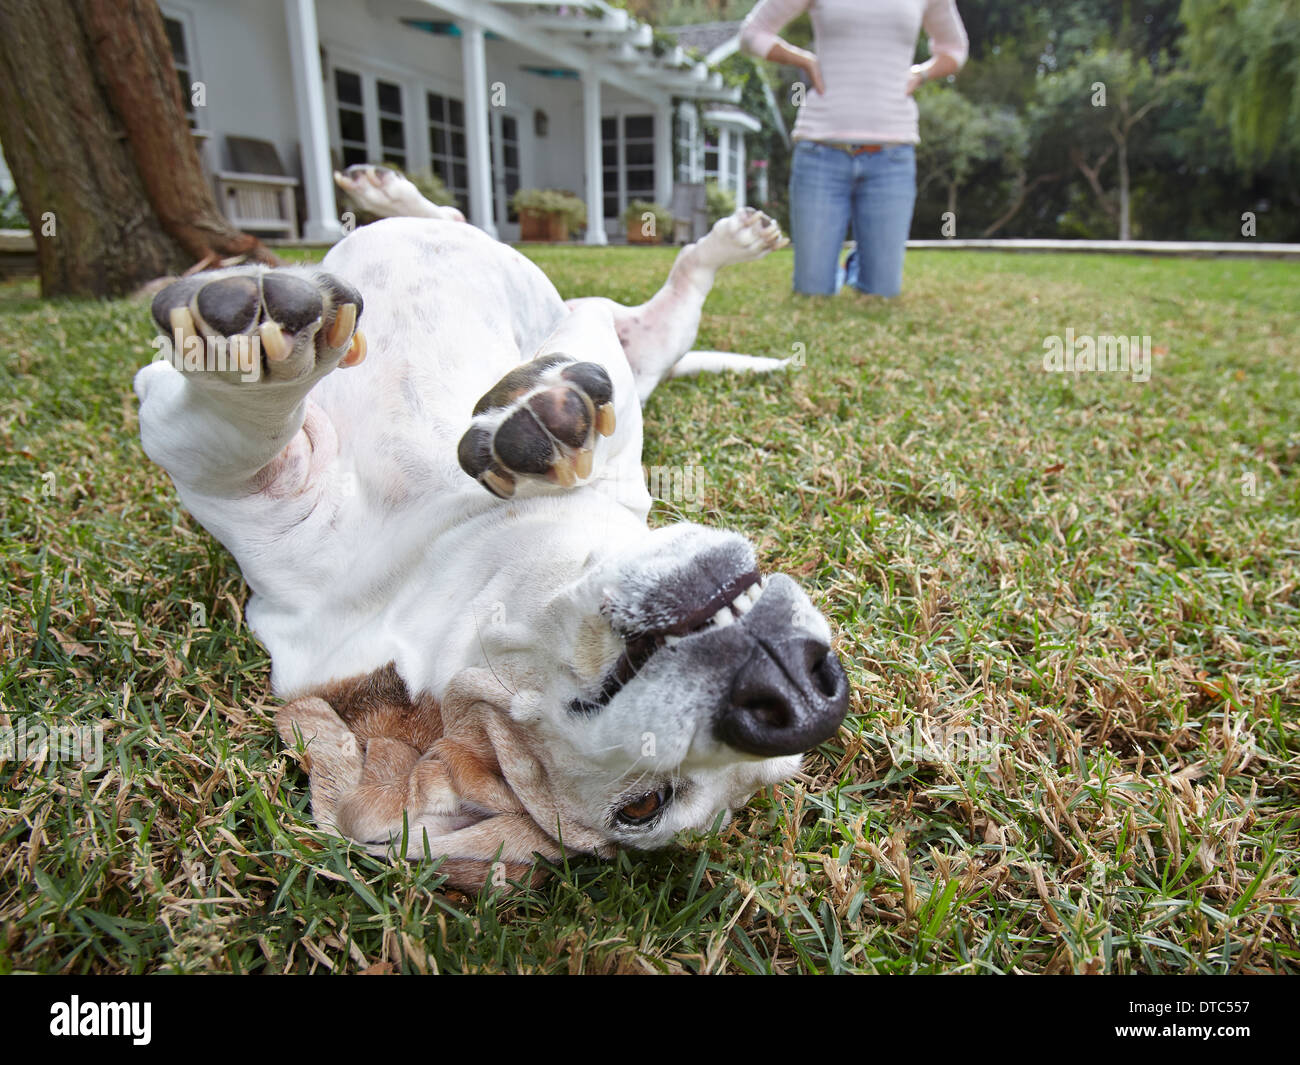 Dog rolling over on grass, woman in background - Stock Image